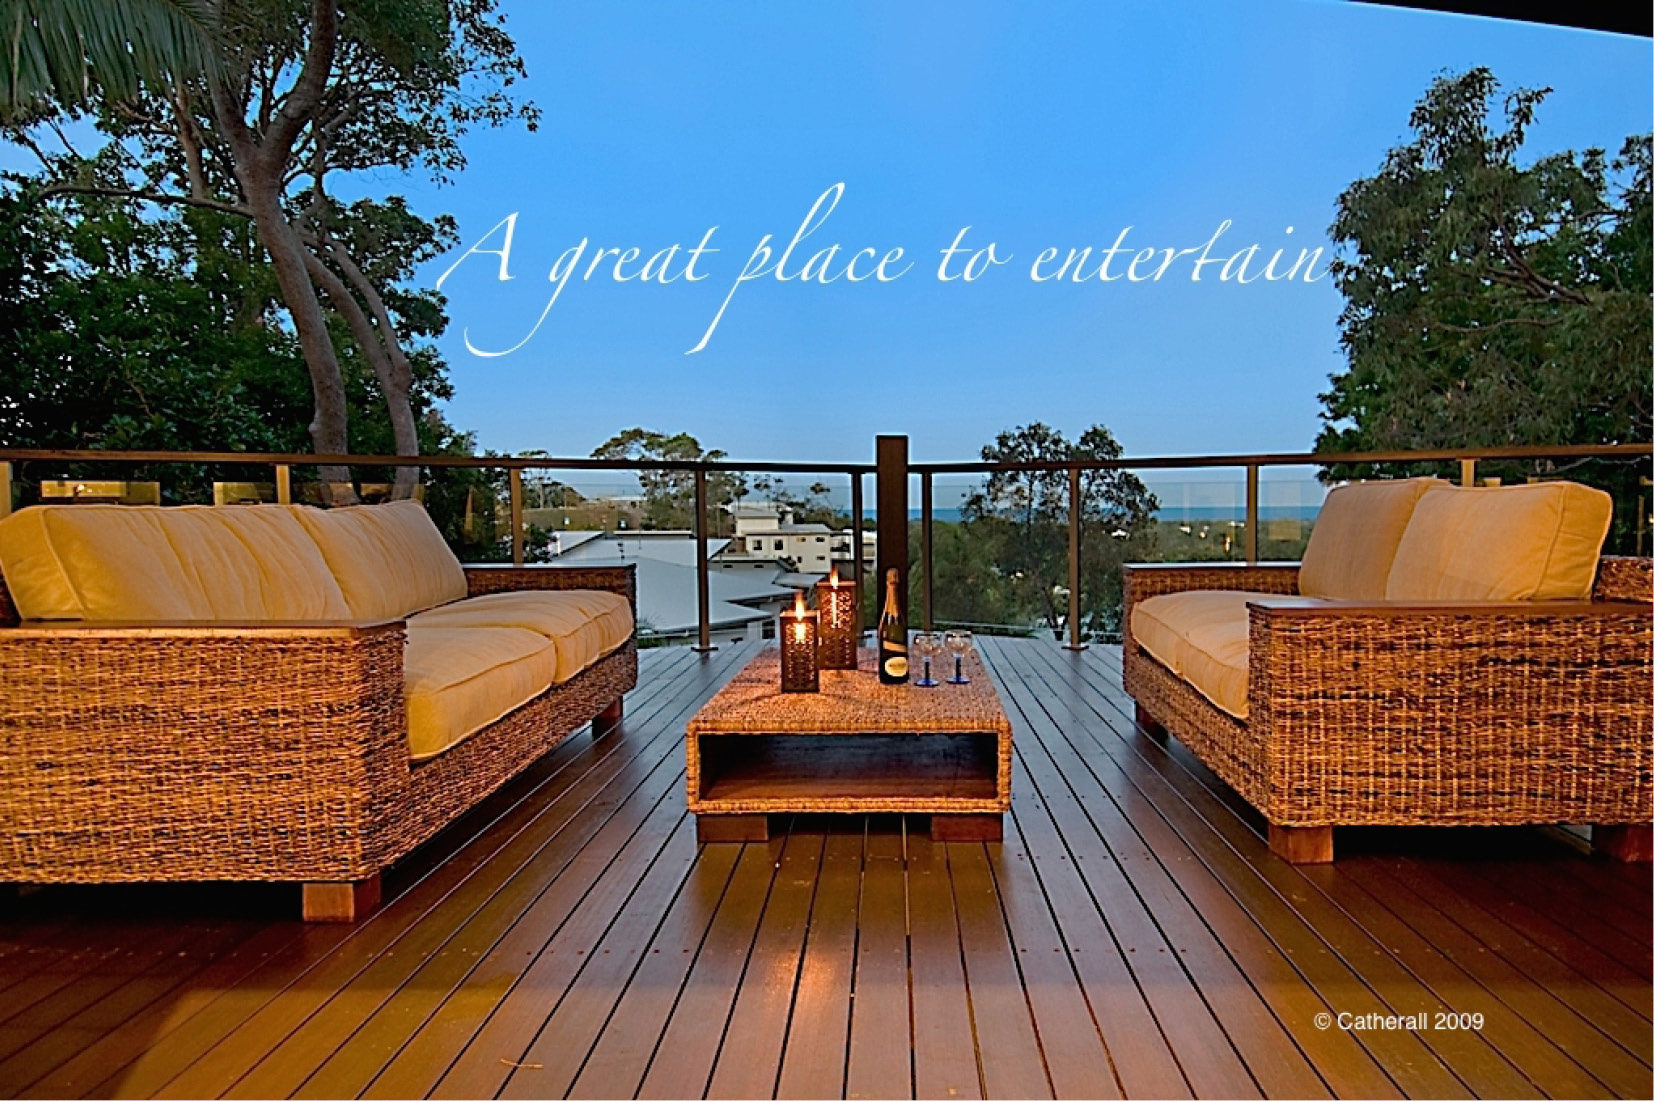 Decks Sunshine Coast - to entertain